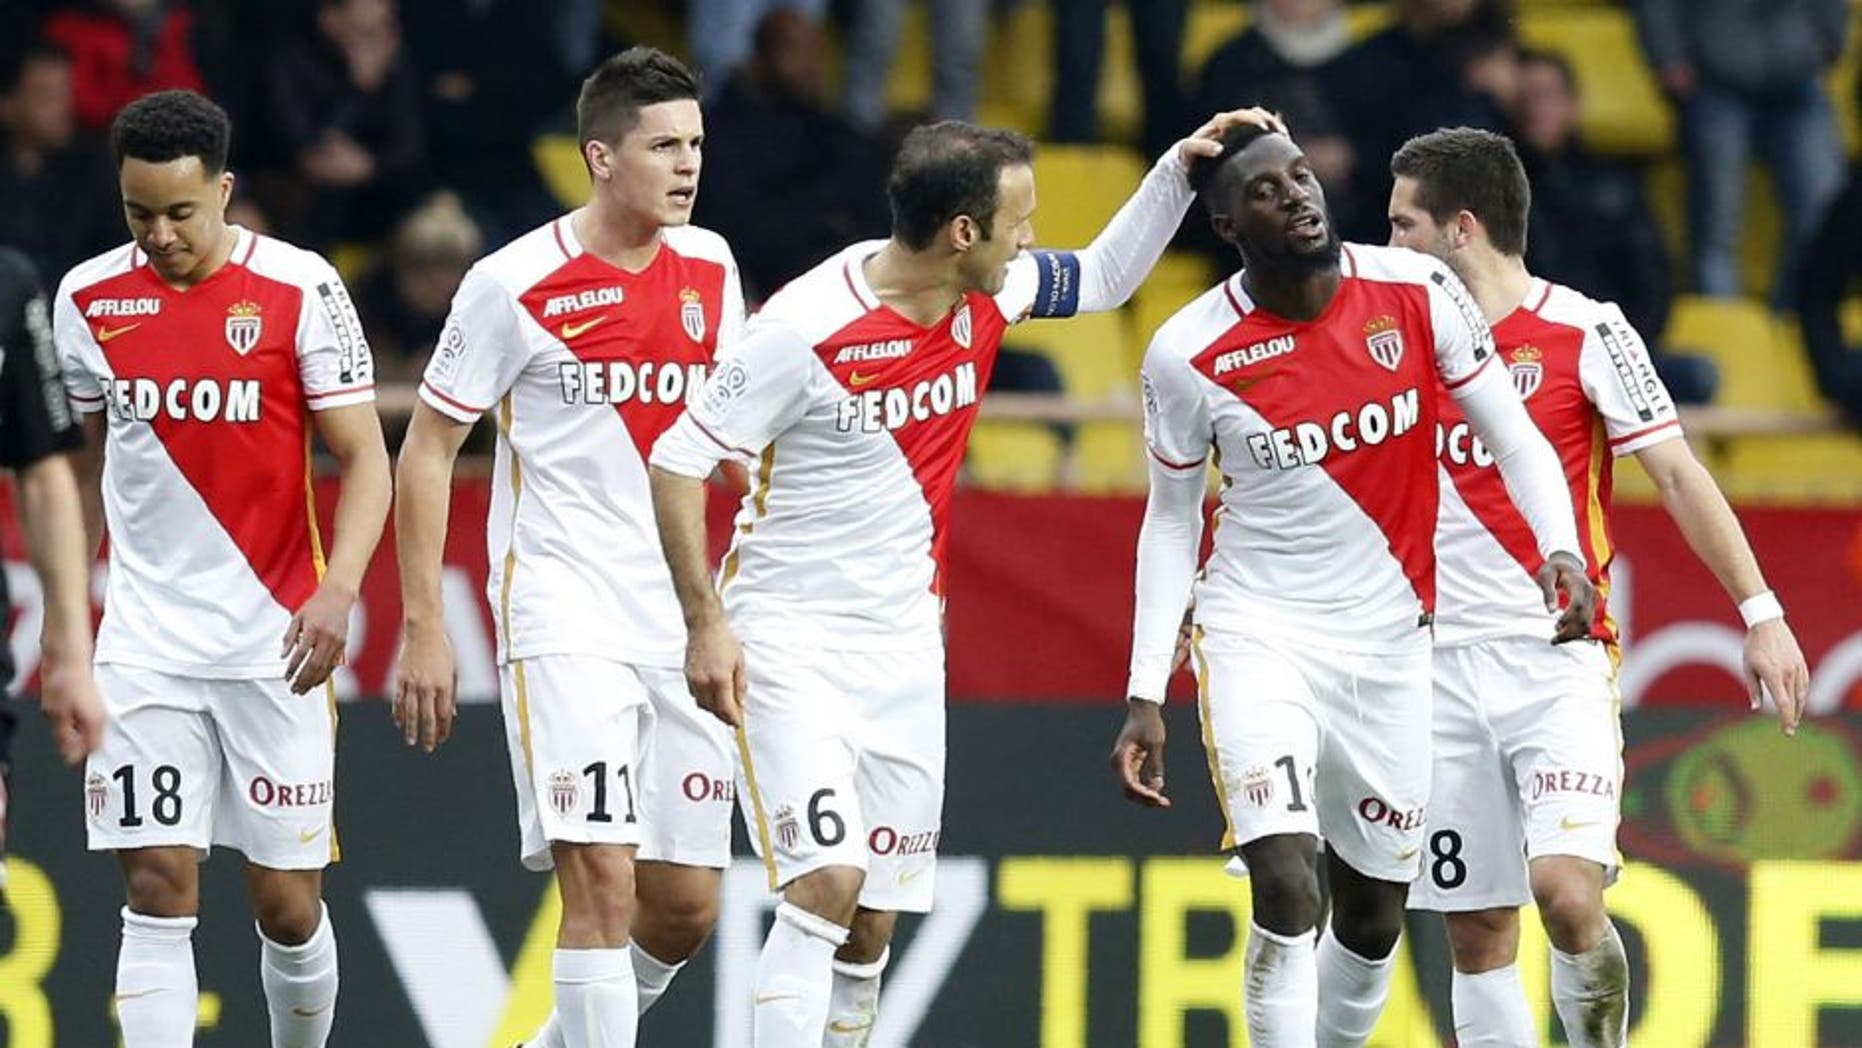 Monaco's French Midfielder Tiemoue Bakayoko (2nd R) celebrates with teammates after scoring a goal during the French L1 football match between Monaco (ASM) and Nice (OGCN) at Louis II Stadium in Monaco on February 6, 2016. AFP PHOTO / VALERY HACHE / AFP / VALERY HACHE (Photo credit should read VALERY HACHE/AFP/Getty Images)